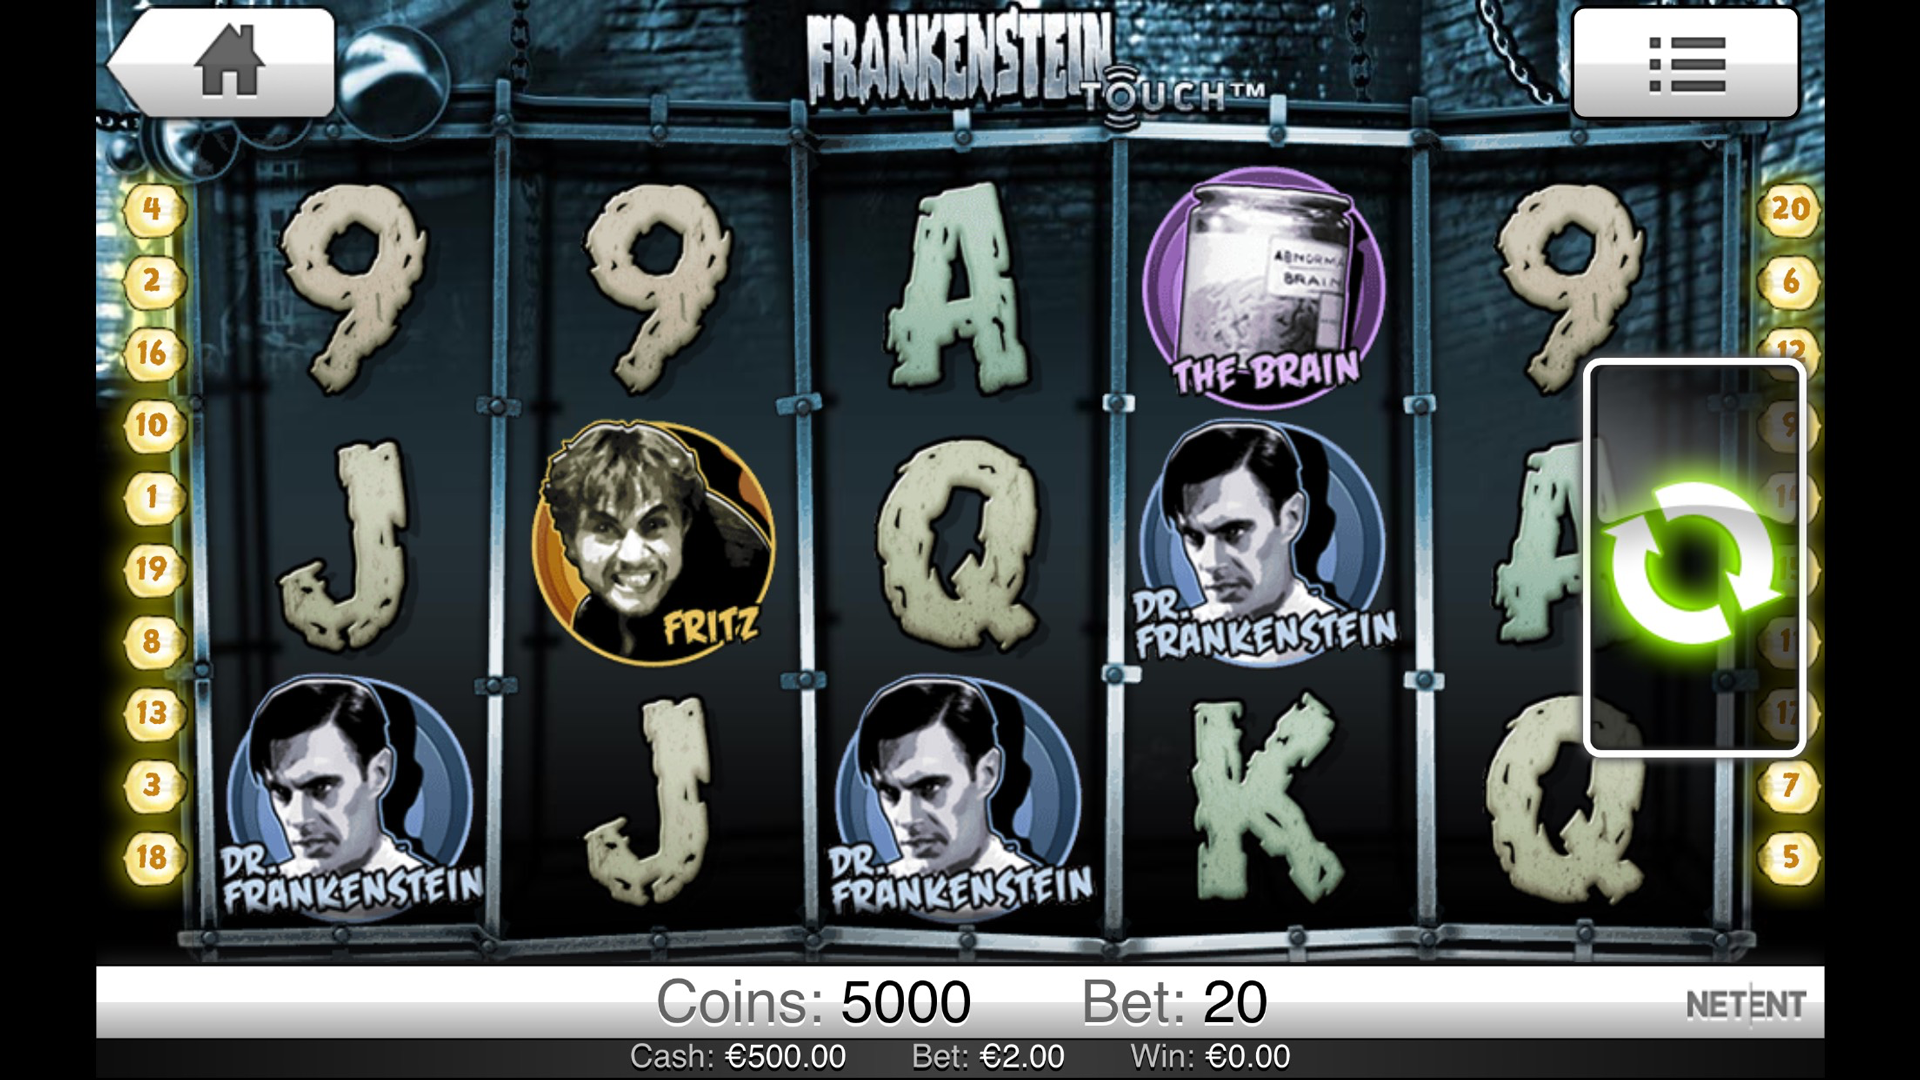 Frankenstein Slot Machine